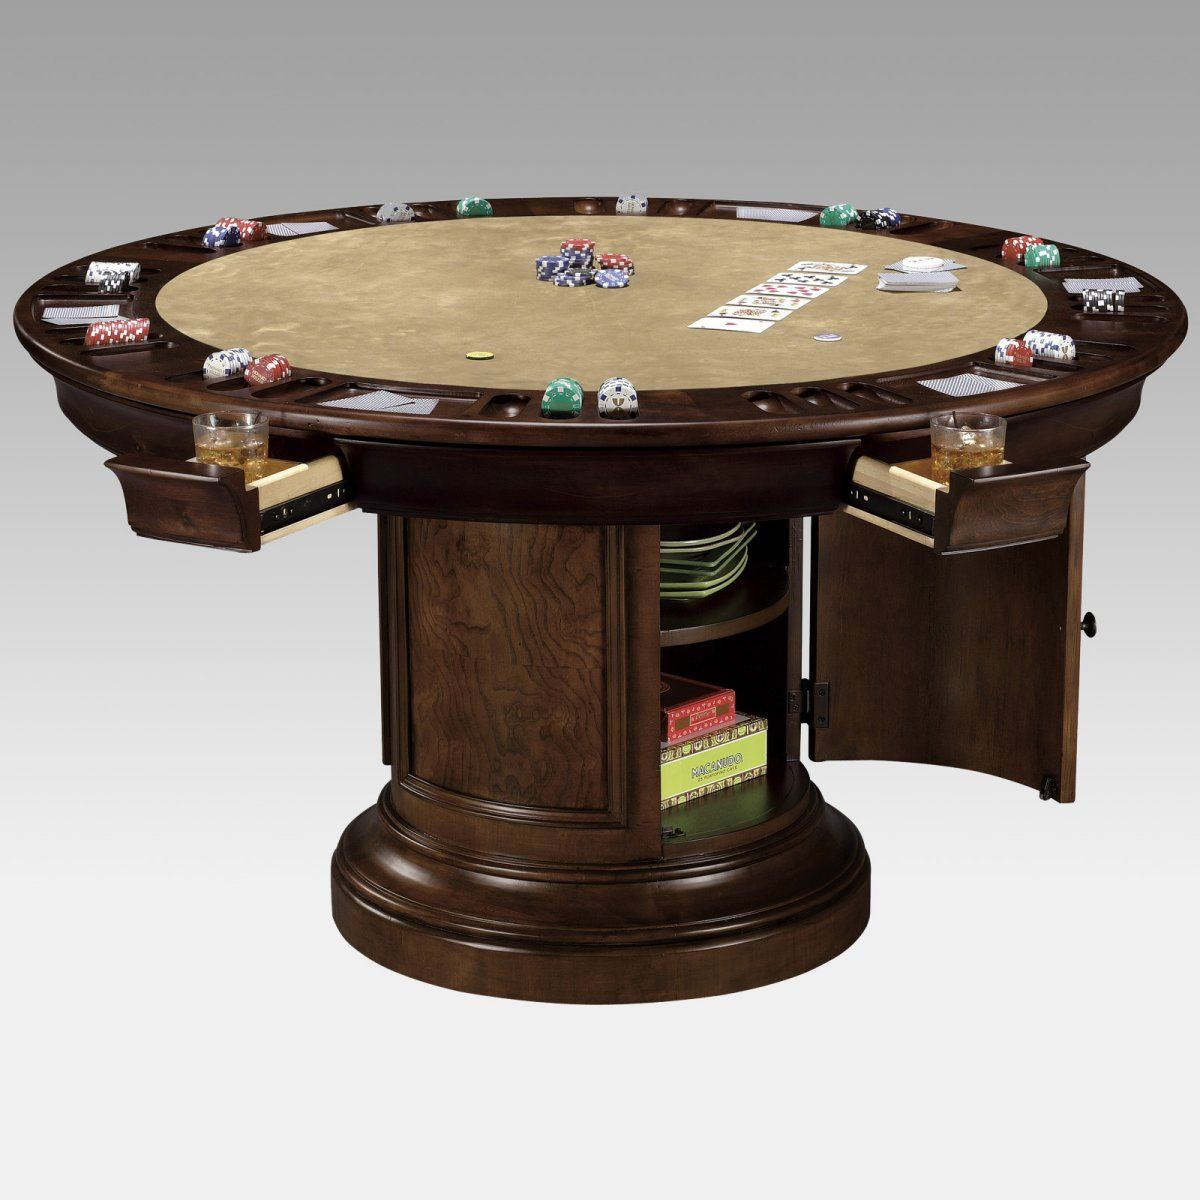 Round Dining Table That Converts To Game Table. Use Furniture Sliding Pads  To Easily Move